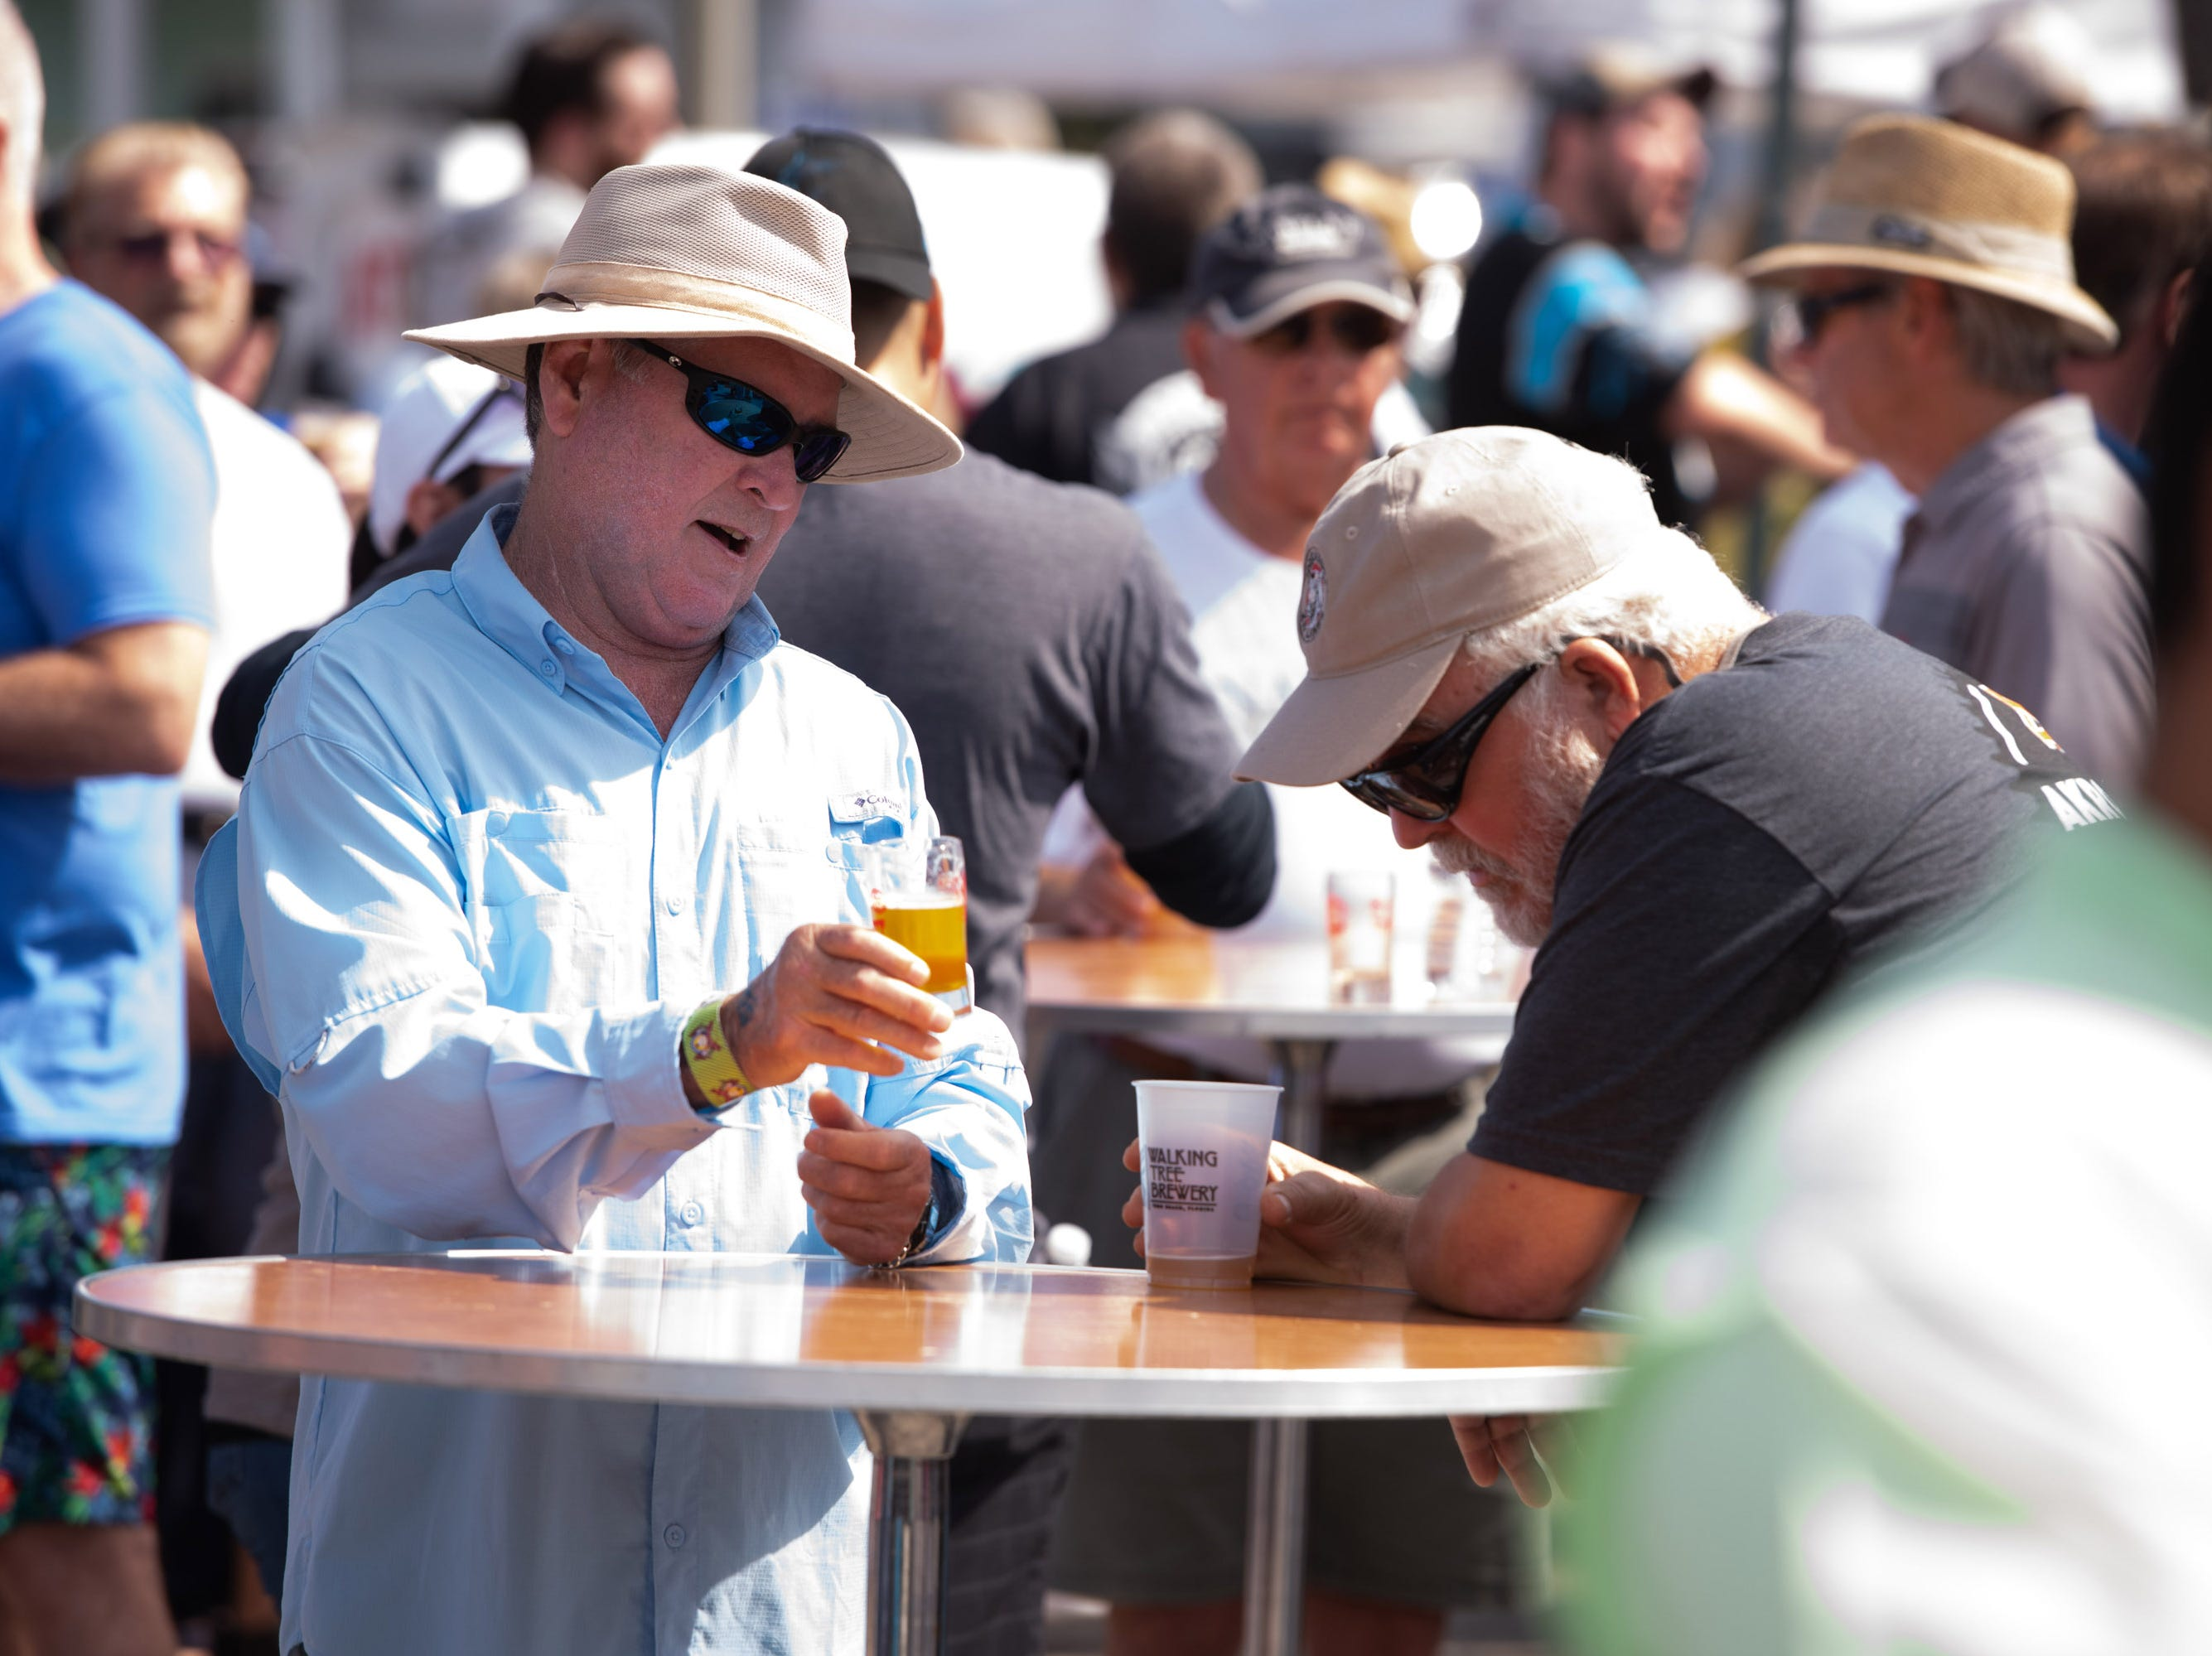 The Florida Craft Brew and Wingfest is held at Royal Palm Pointe on Saturday, Feb. 16, 2019, in Vero Beach.